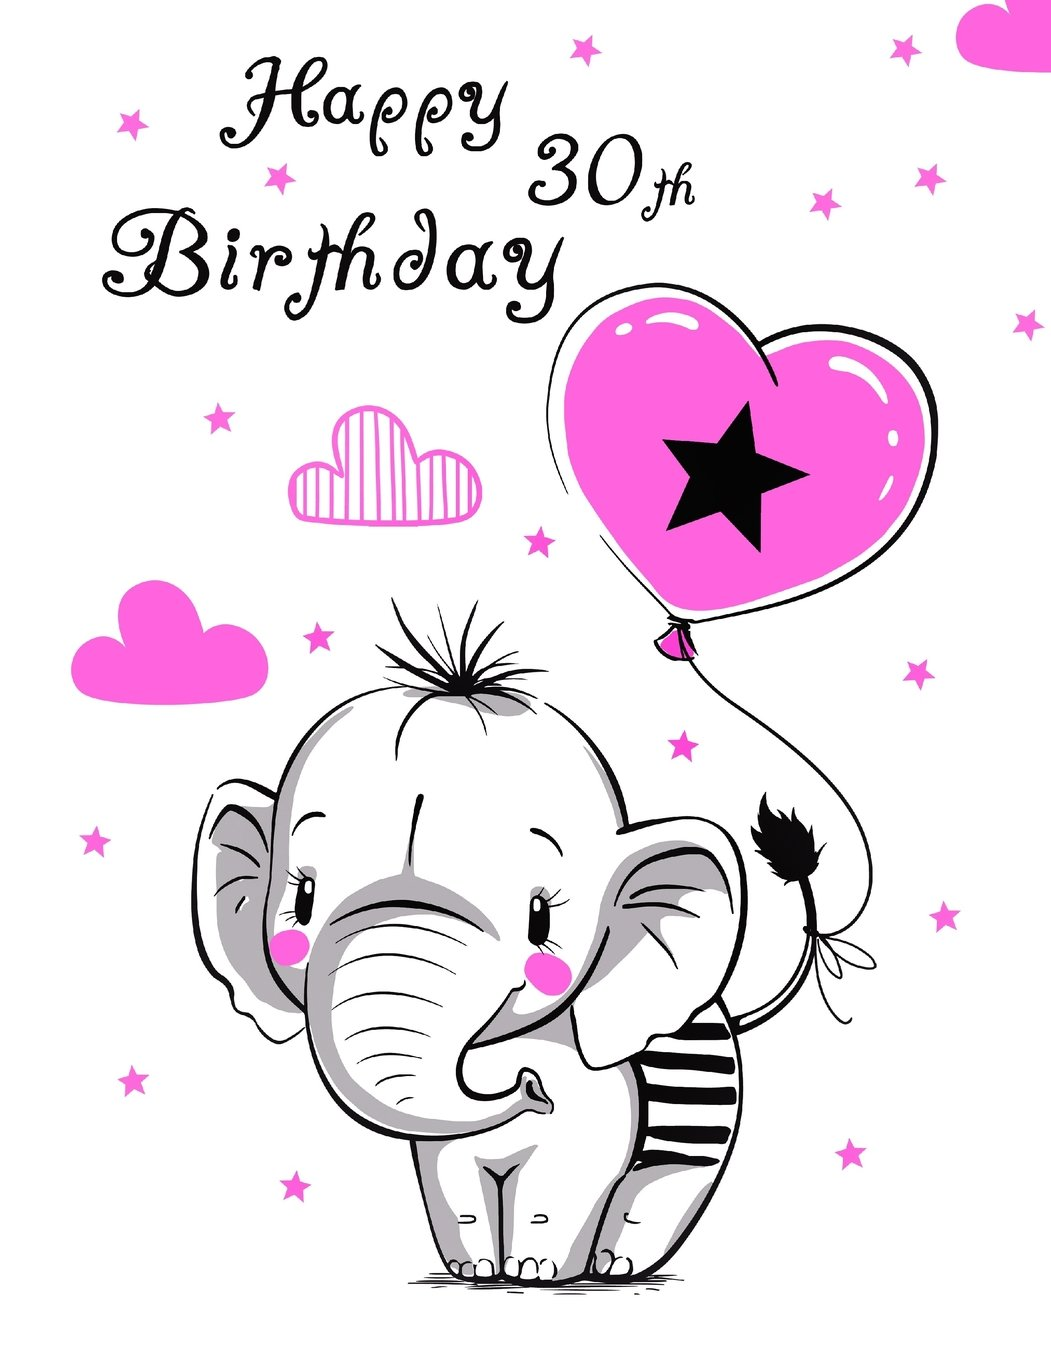 """Happy 30th Birthday: Notebook, Journal, Diary, 105 Lined Pages, Cute Elephant Themed Birthday Gifts for 30 Year Old Women, Daughter, Sister, Girlfriend, Best Friend, Co-Worker, Book Size 8 1/2"""" x 11"""" ebook"""